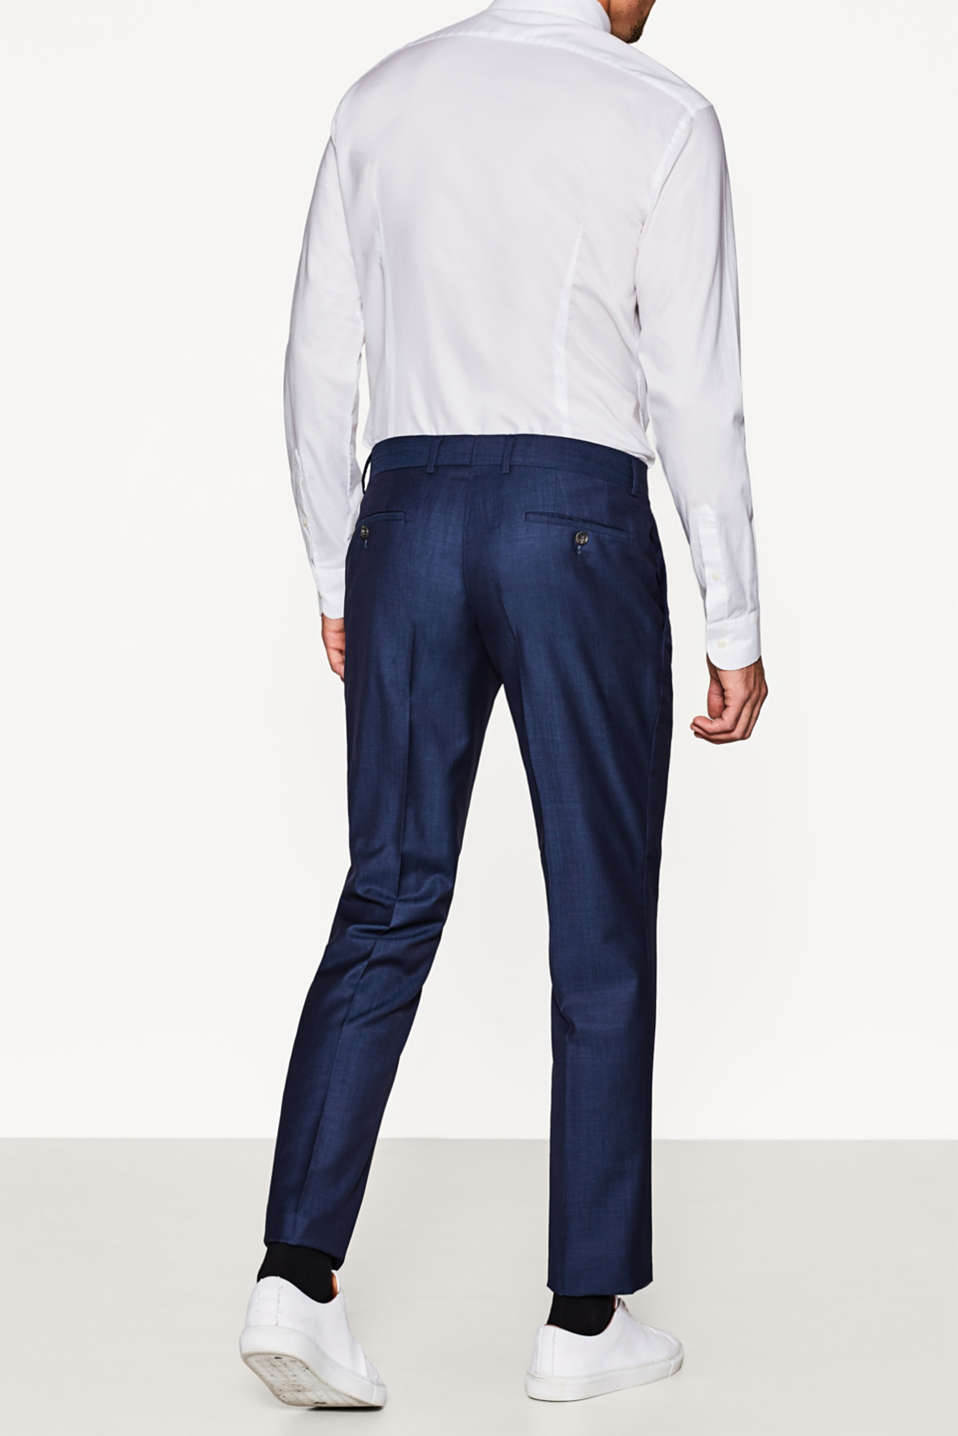 ACTIVE SUIT Pantalon de costume, laine